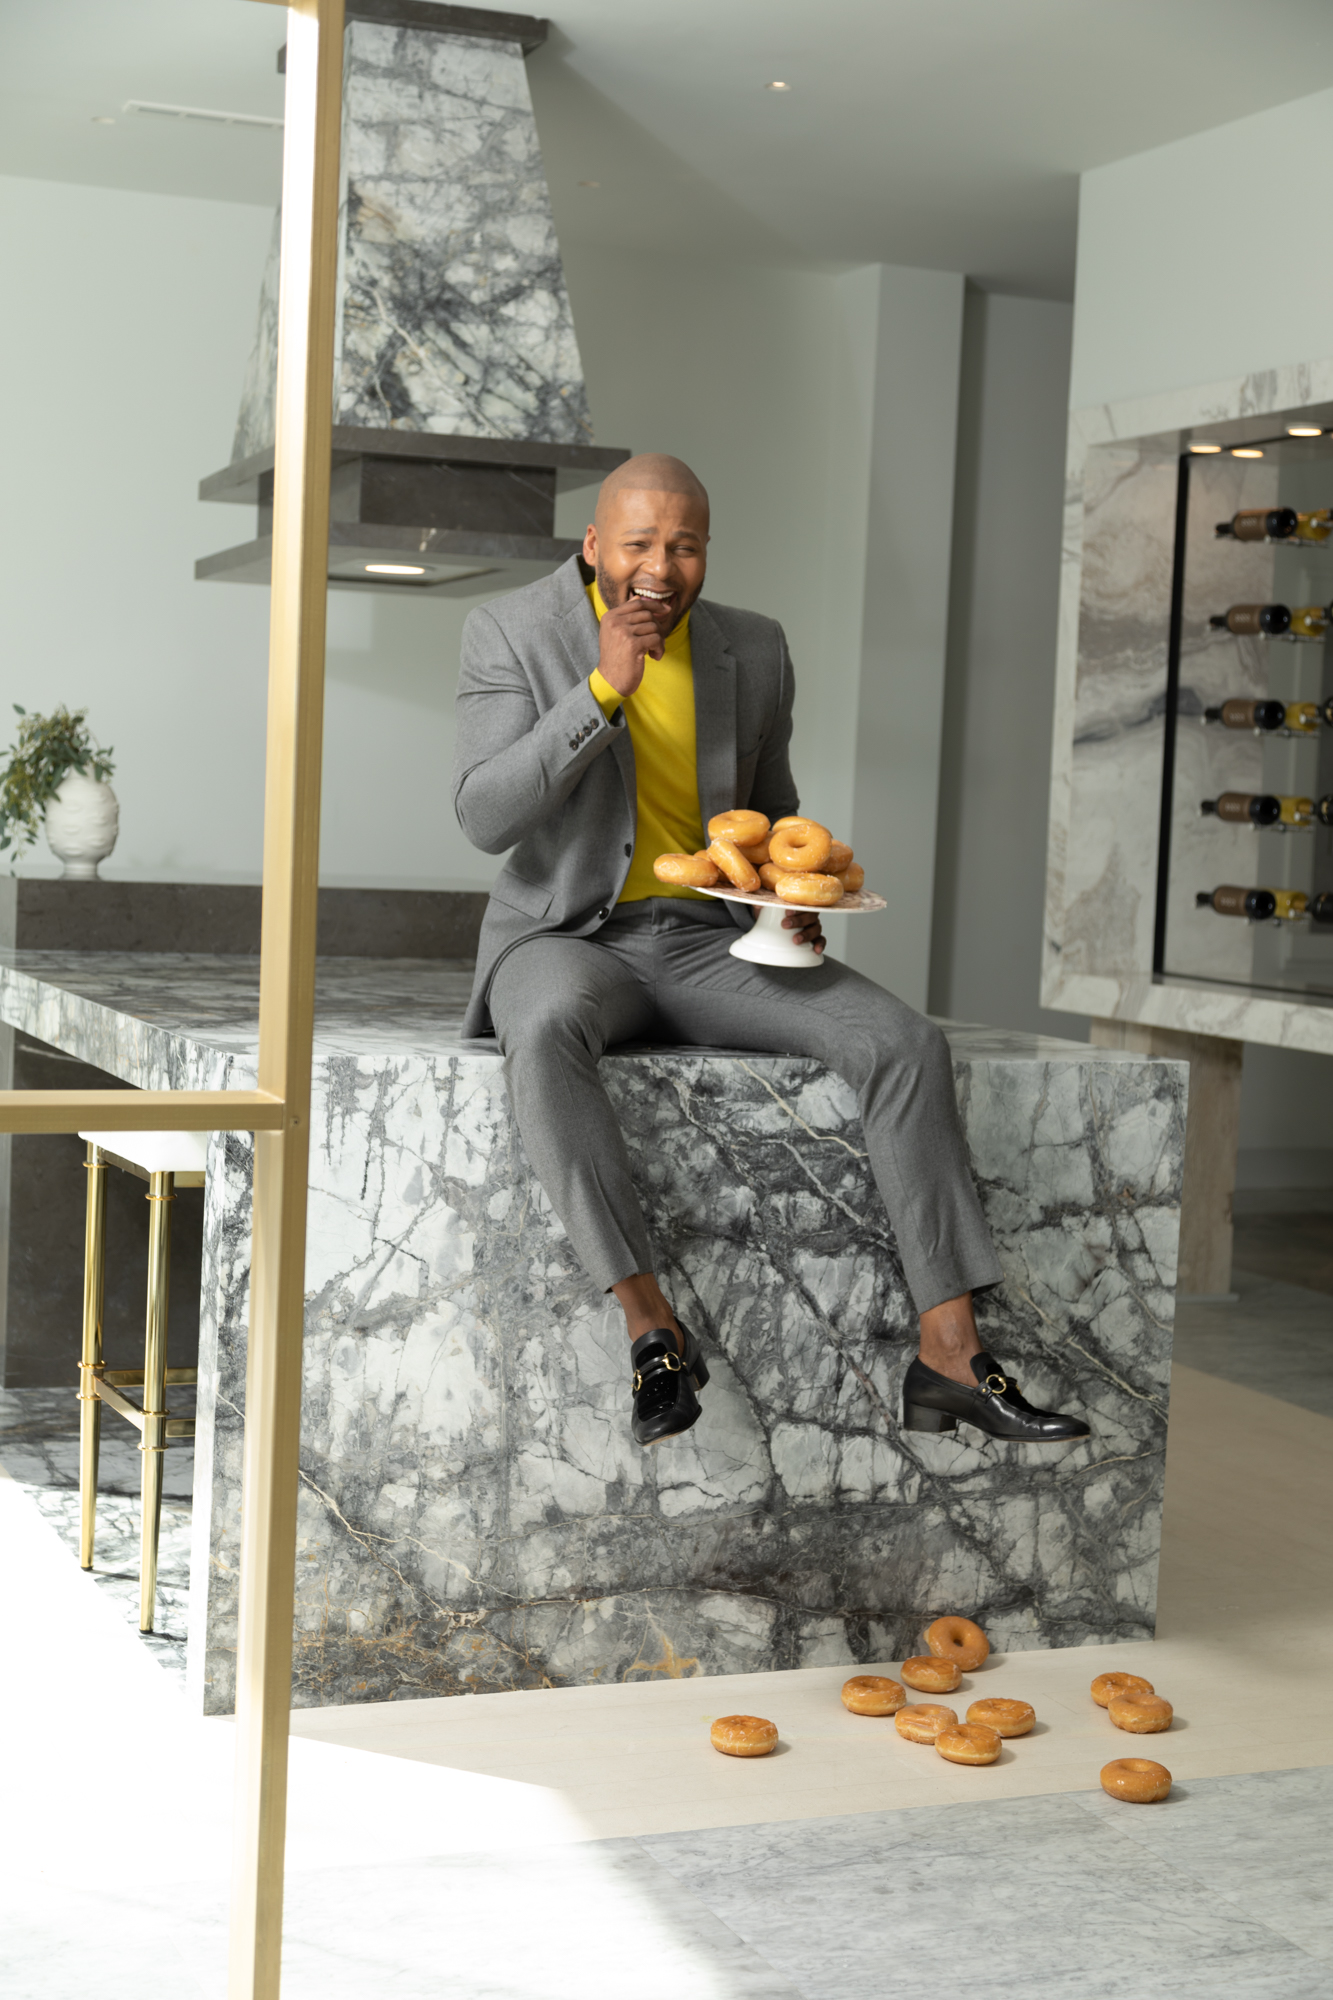 Patrick Heagney photographs laughing designer Michel Smith Boyd as he drops his donuts for Temmer Marble